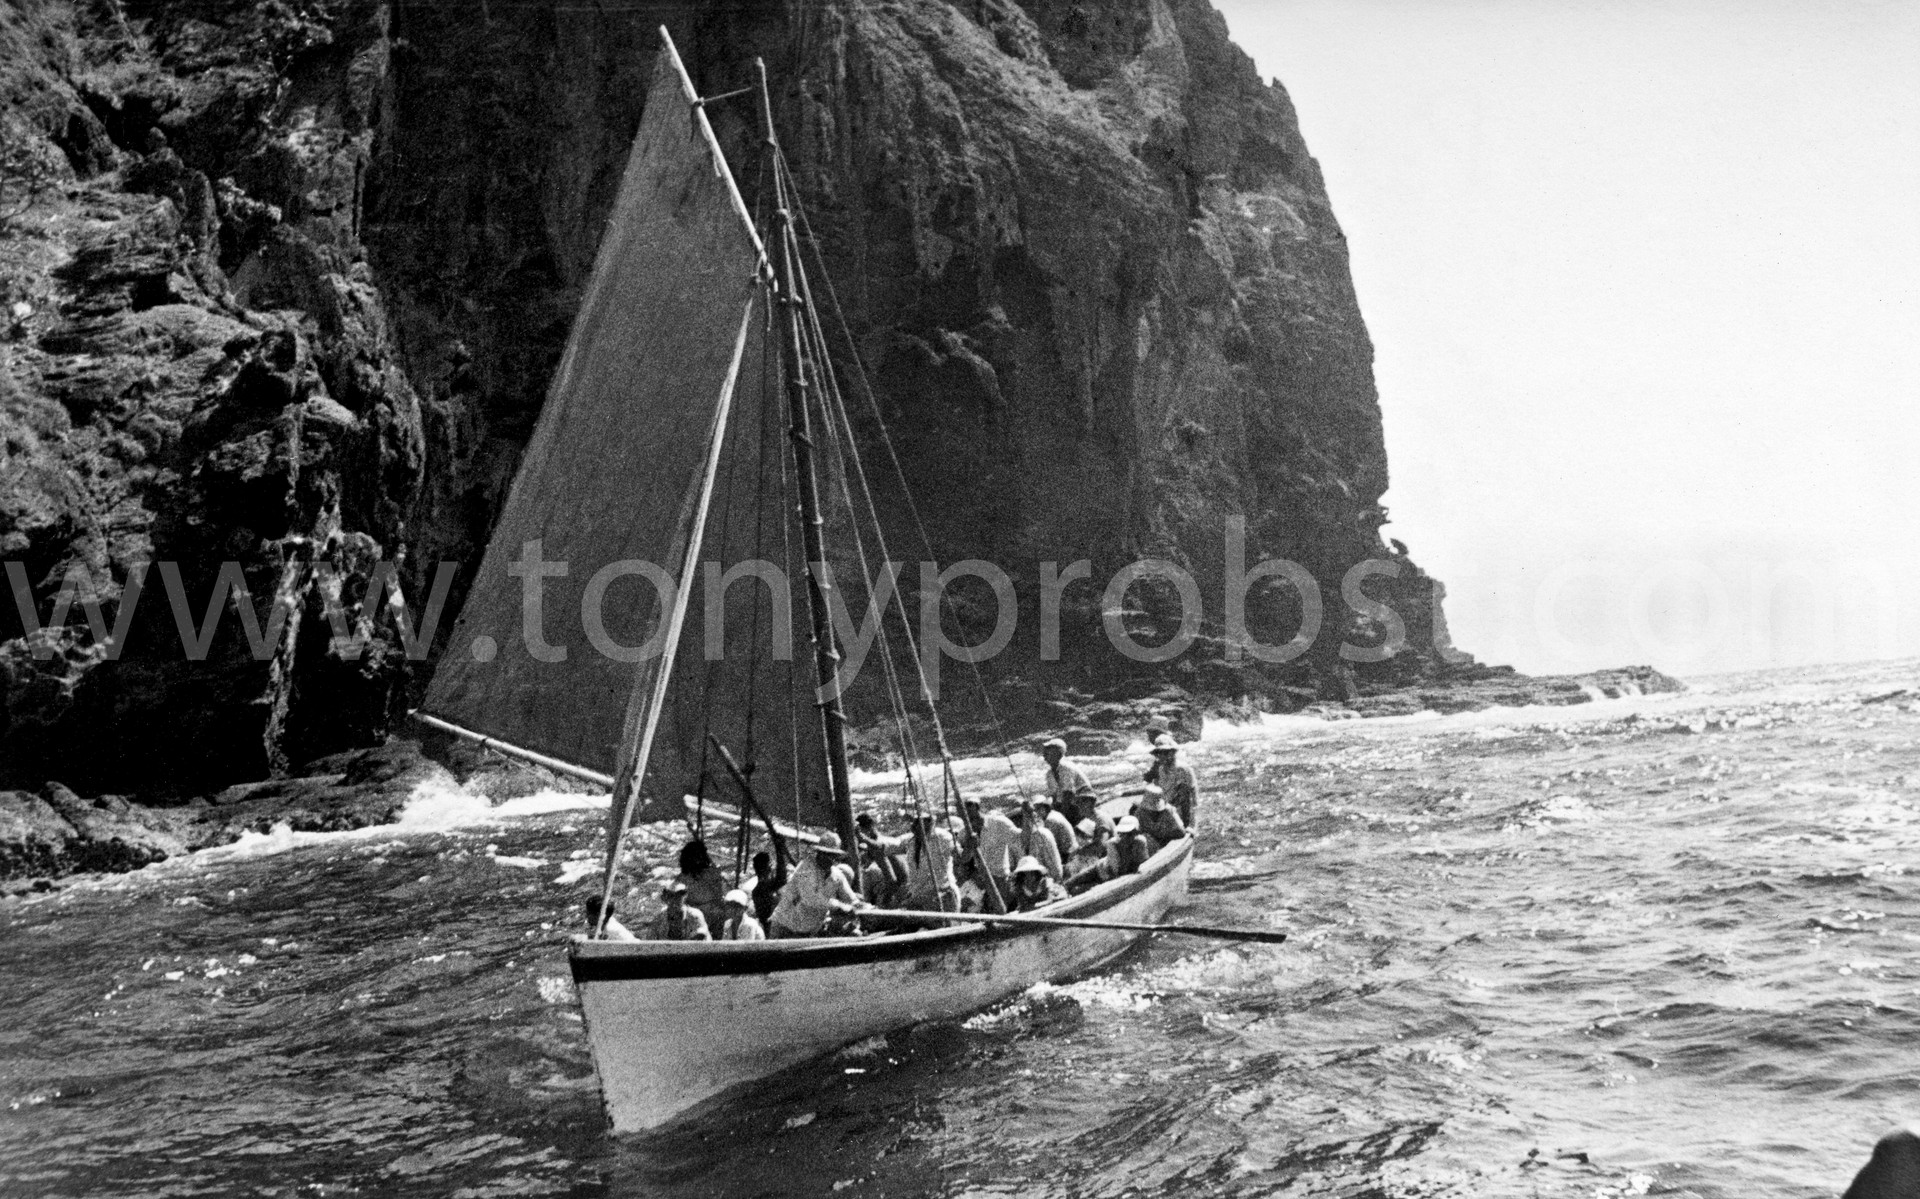 1964 Longboat under sail